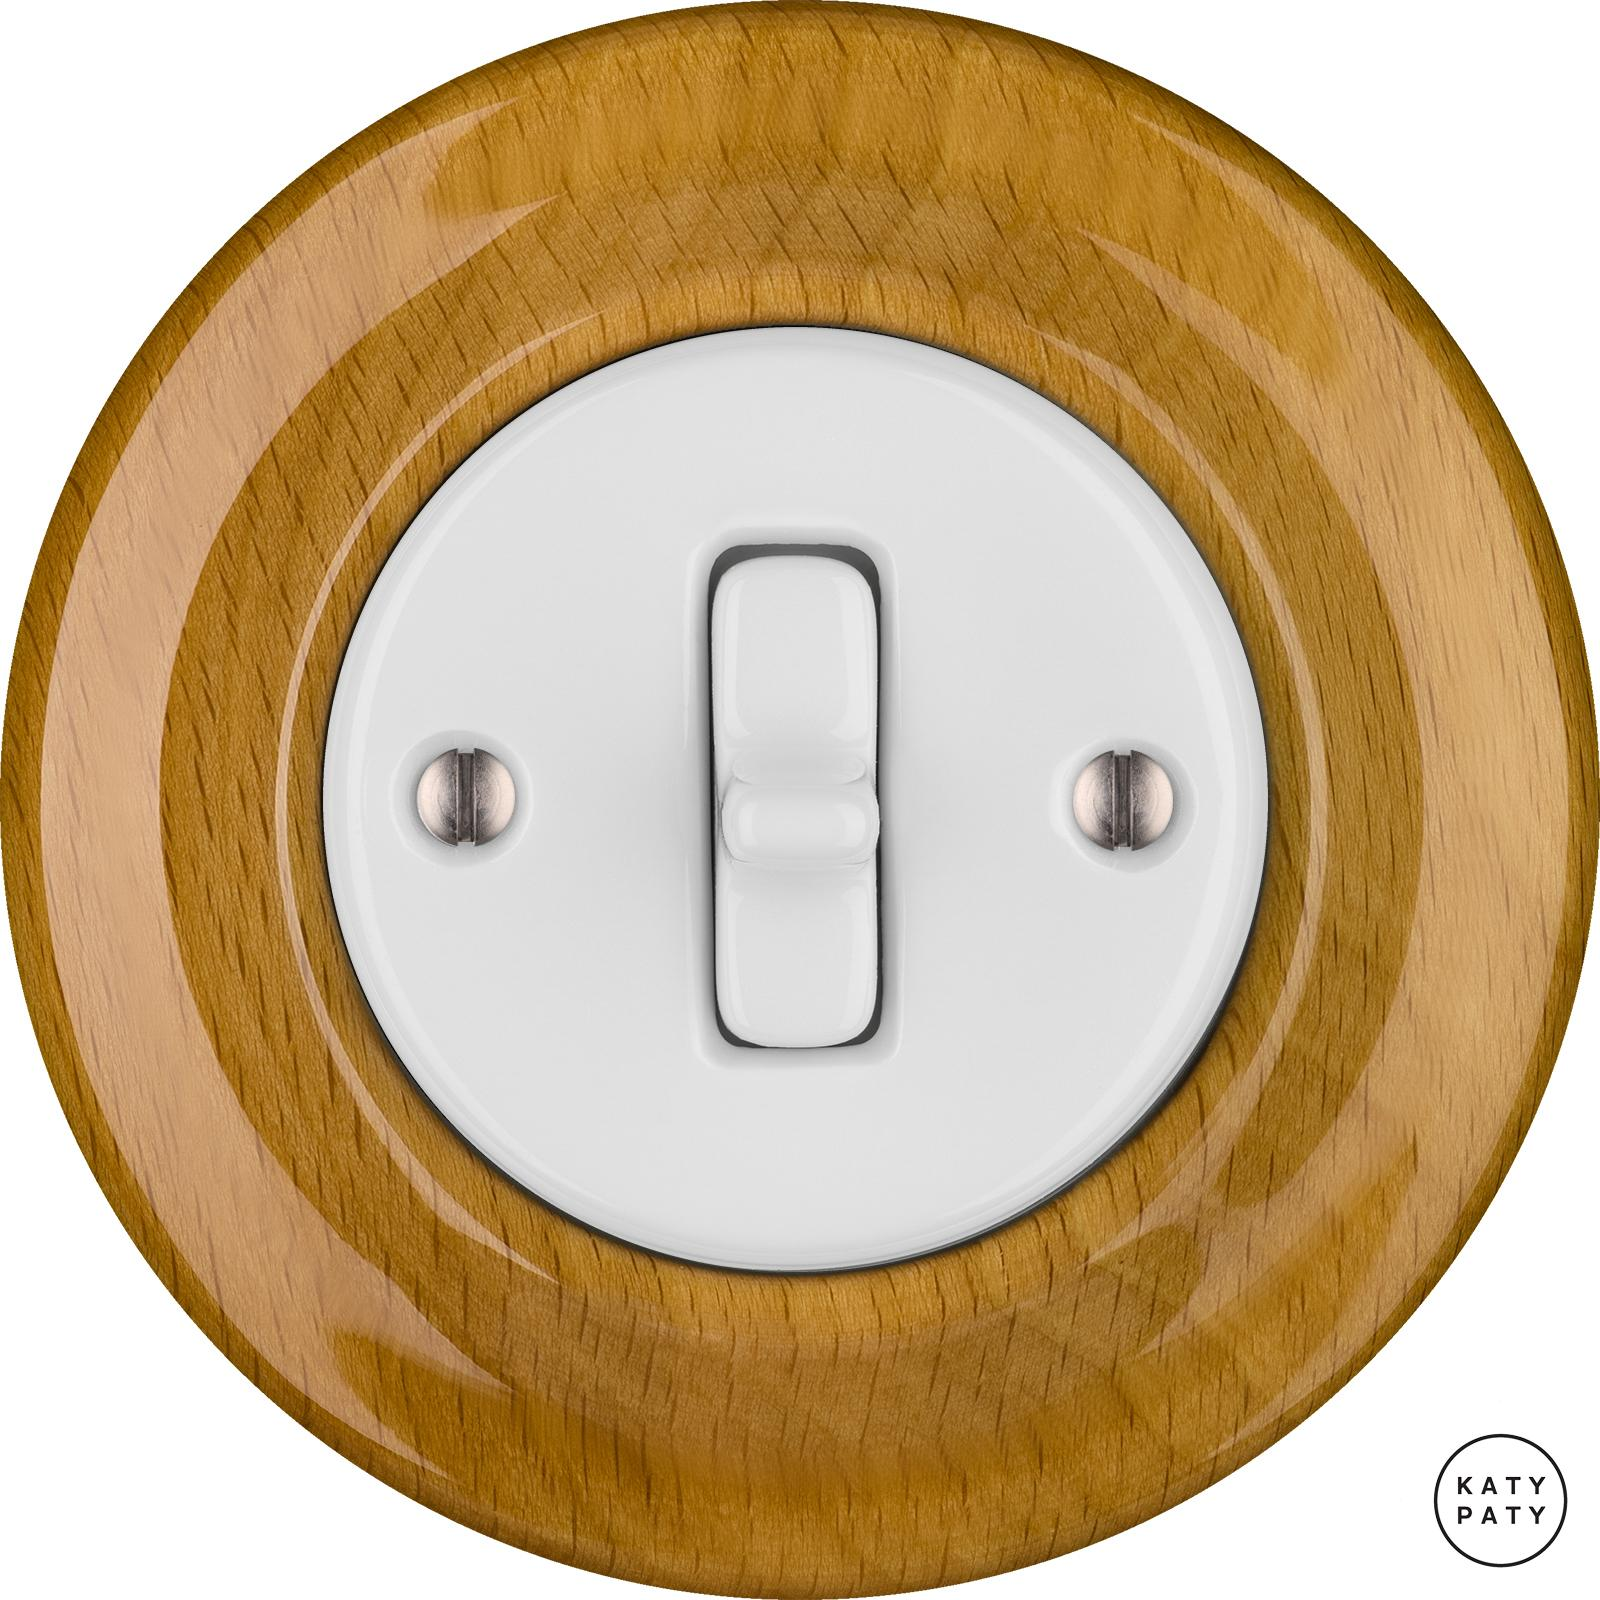 Porcelain Toggle switches - a single key ()  - FAGUS | Katy Paty